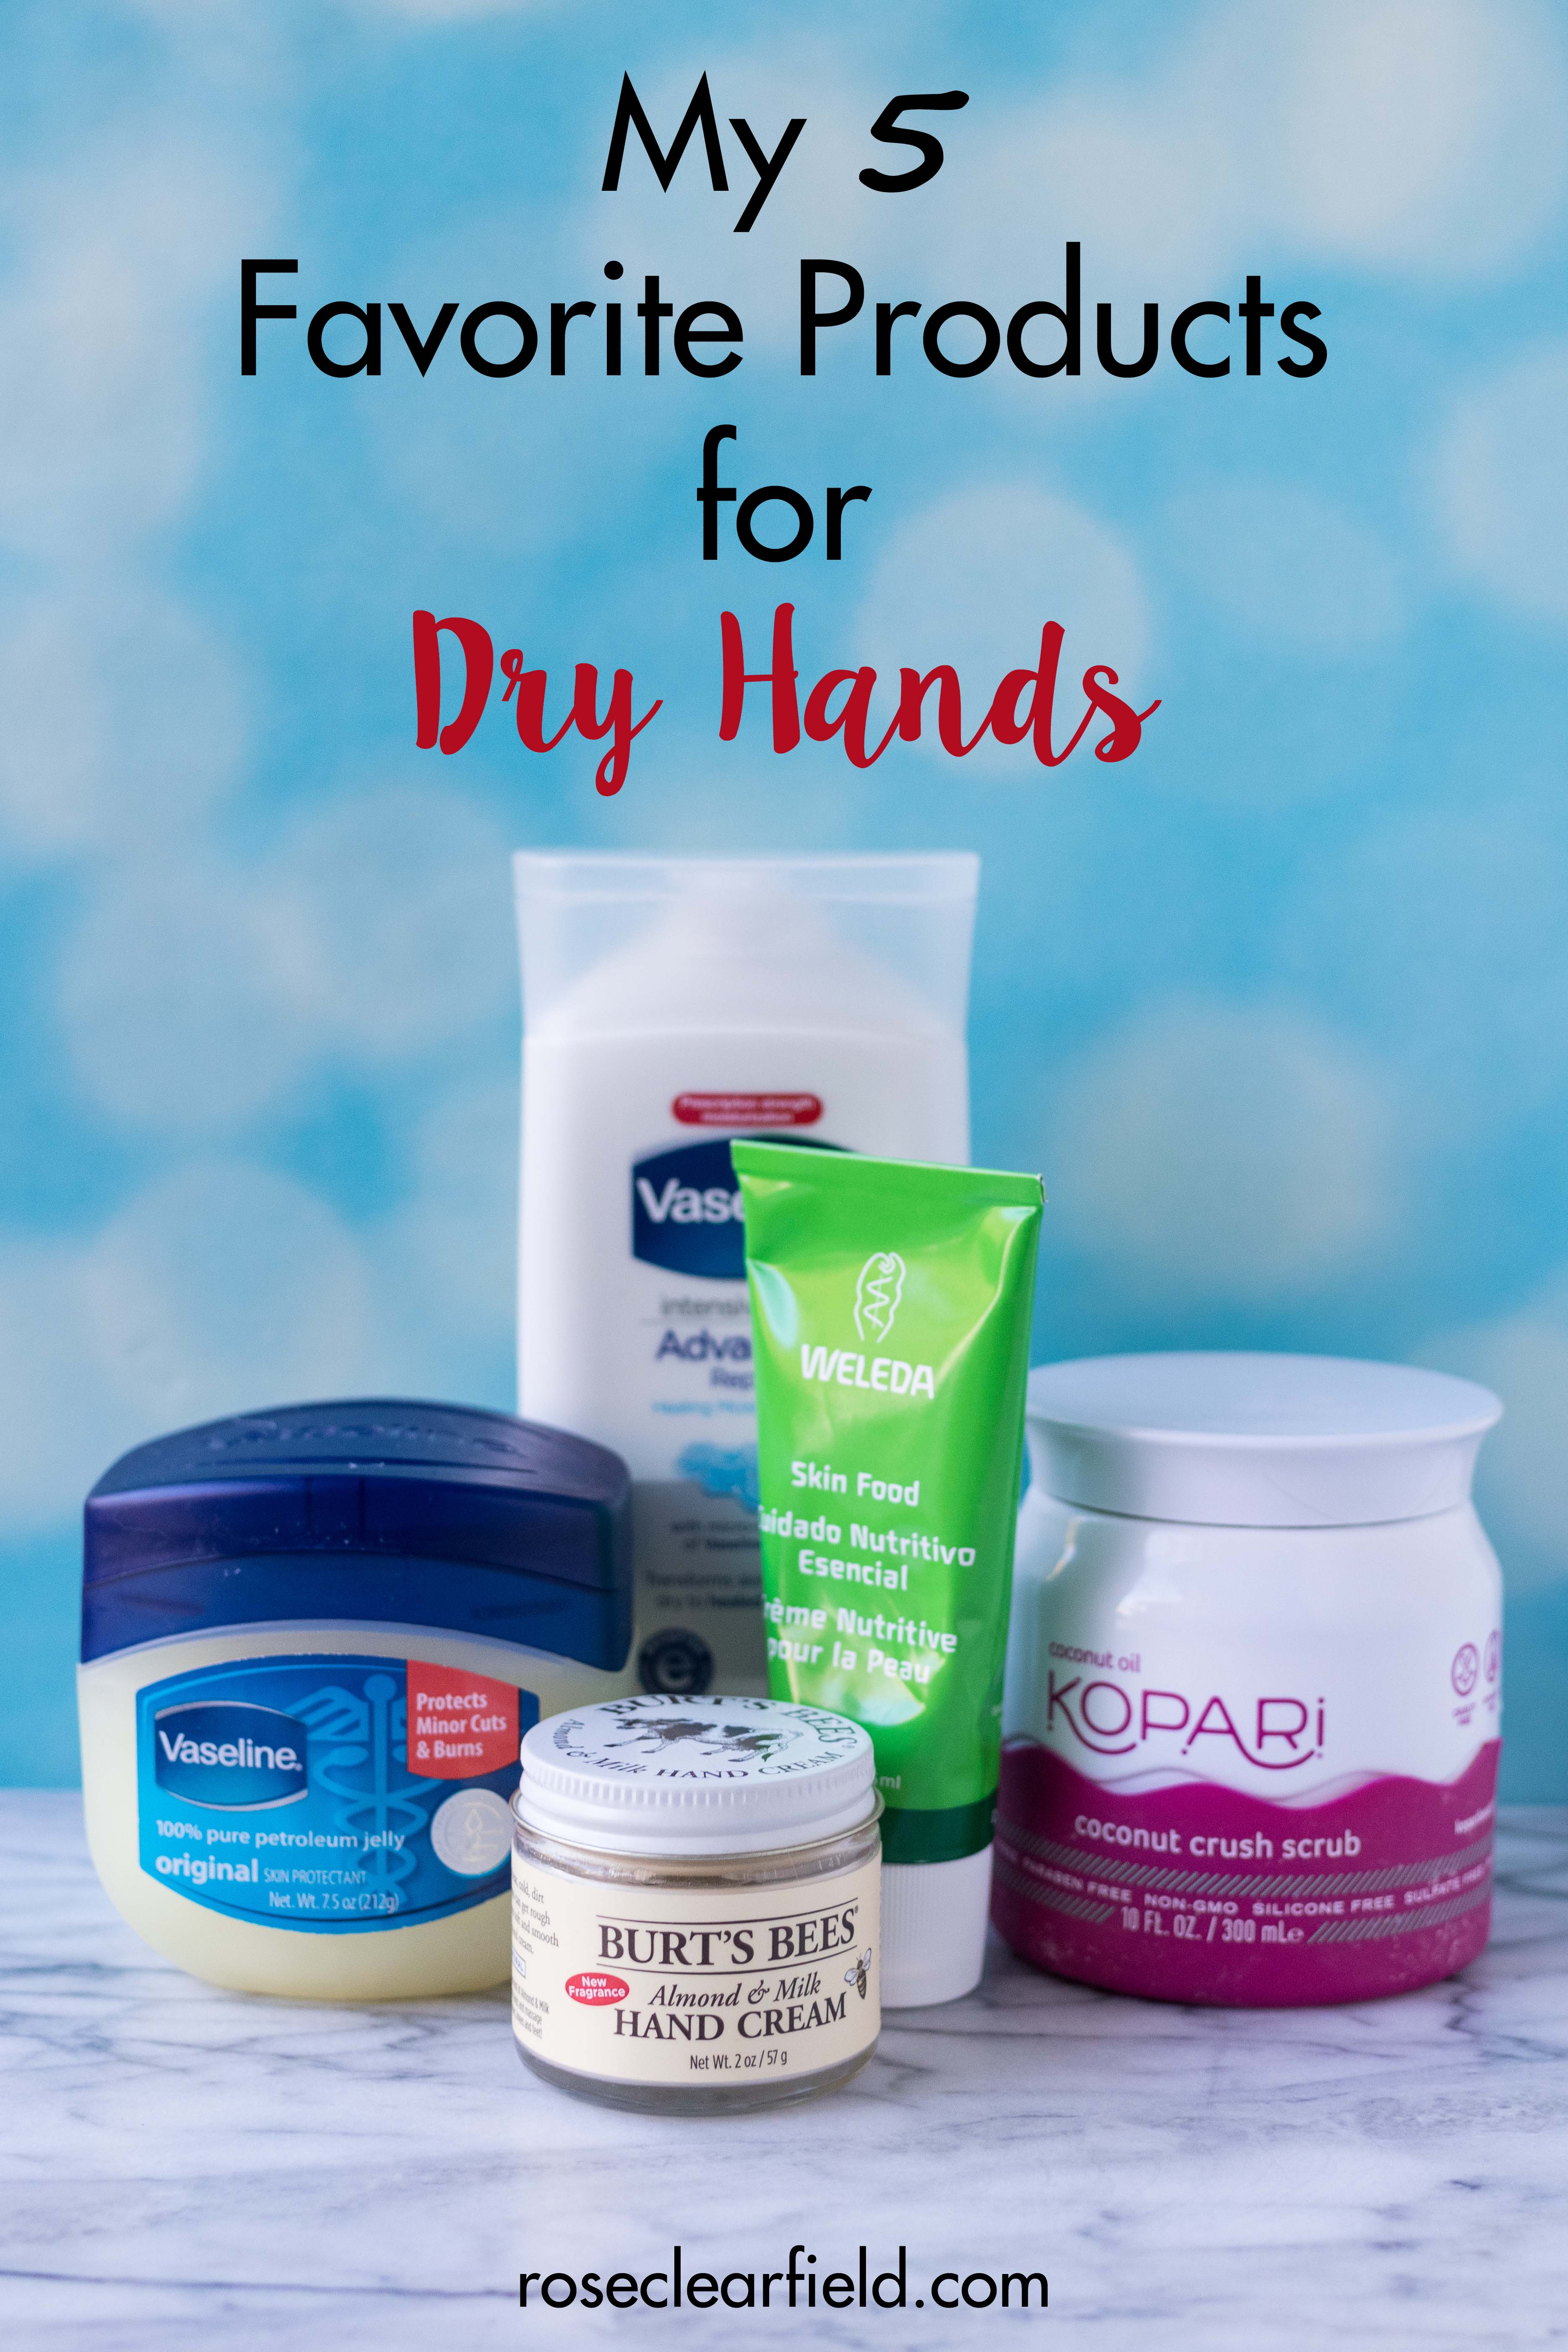 My 5 Favorite Products for Dry Hands | http://www.roseclearfield.com